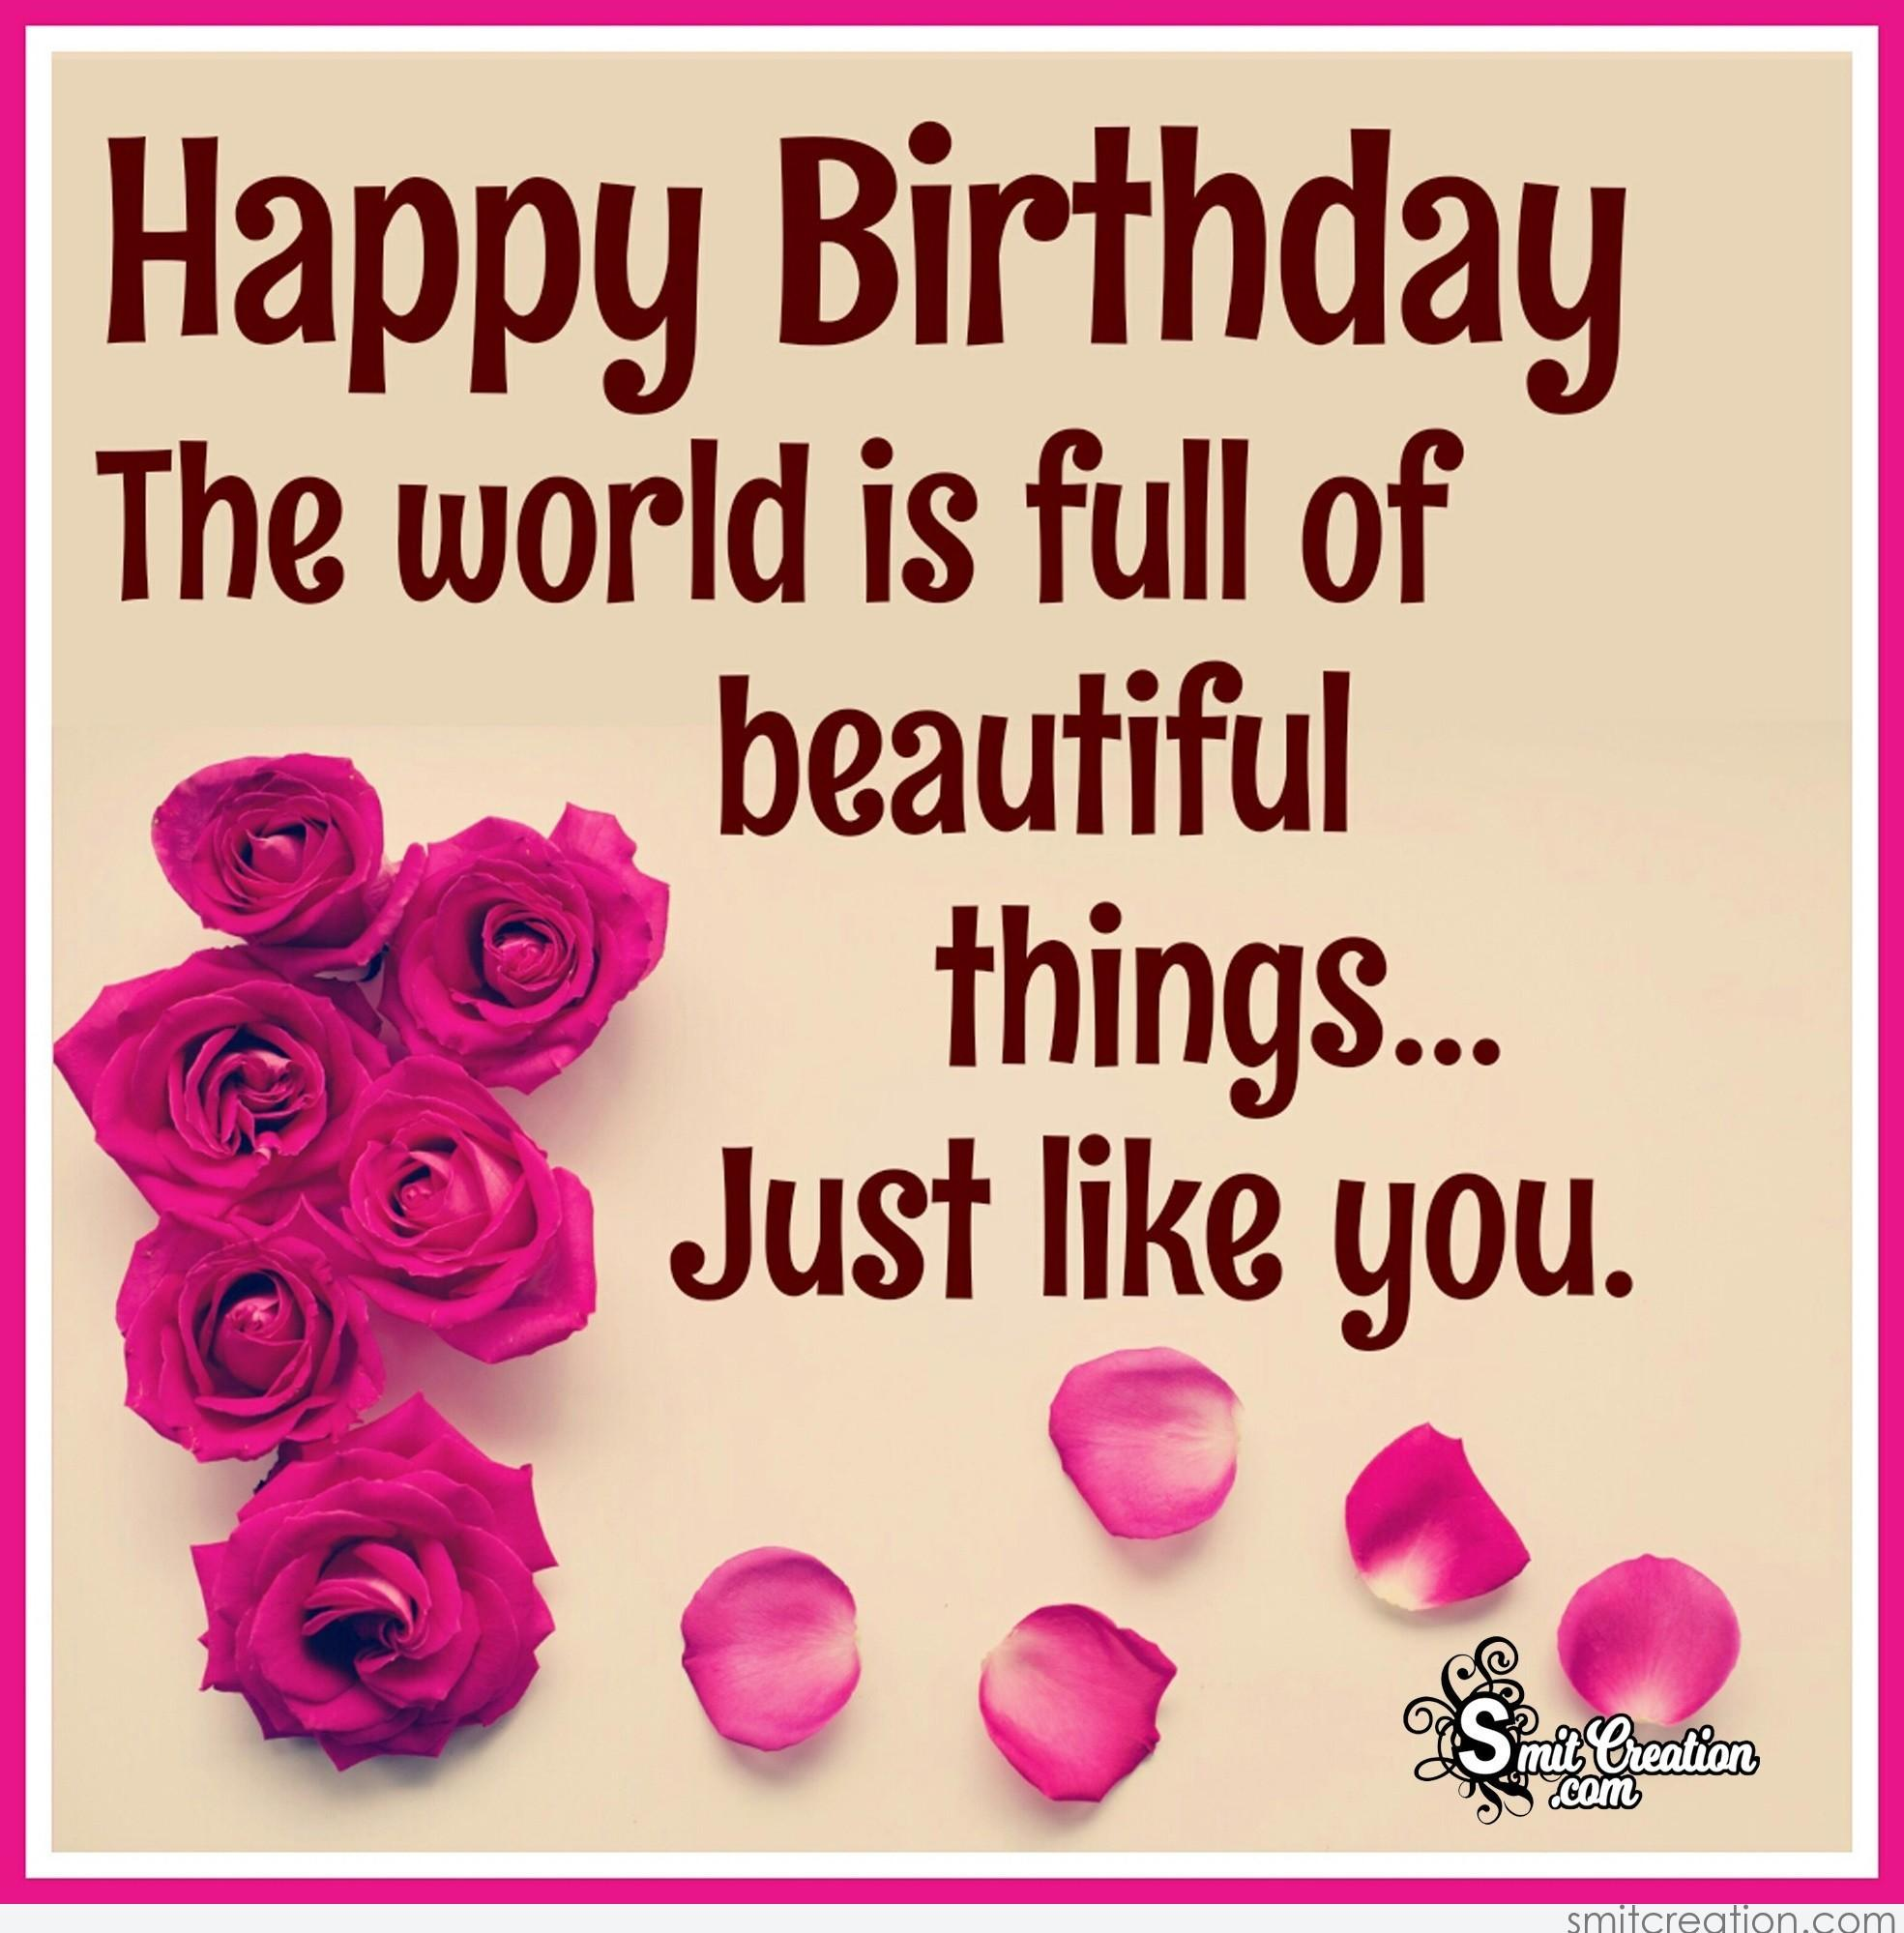 Birthday wishes for girlfriend images for facebook whatsapp instagram kristyandbryce Image collections